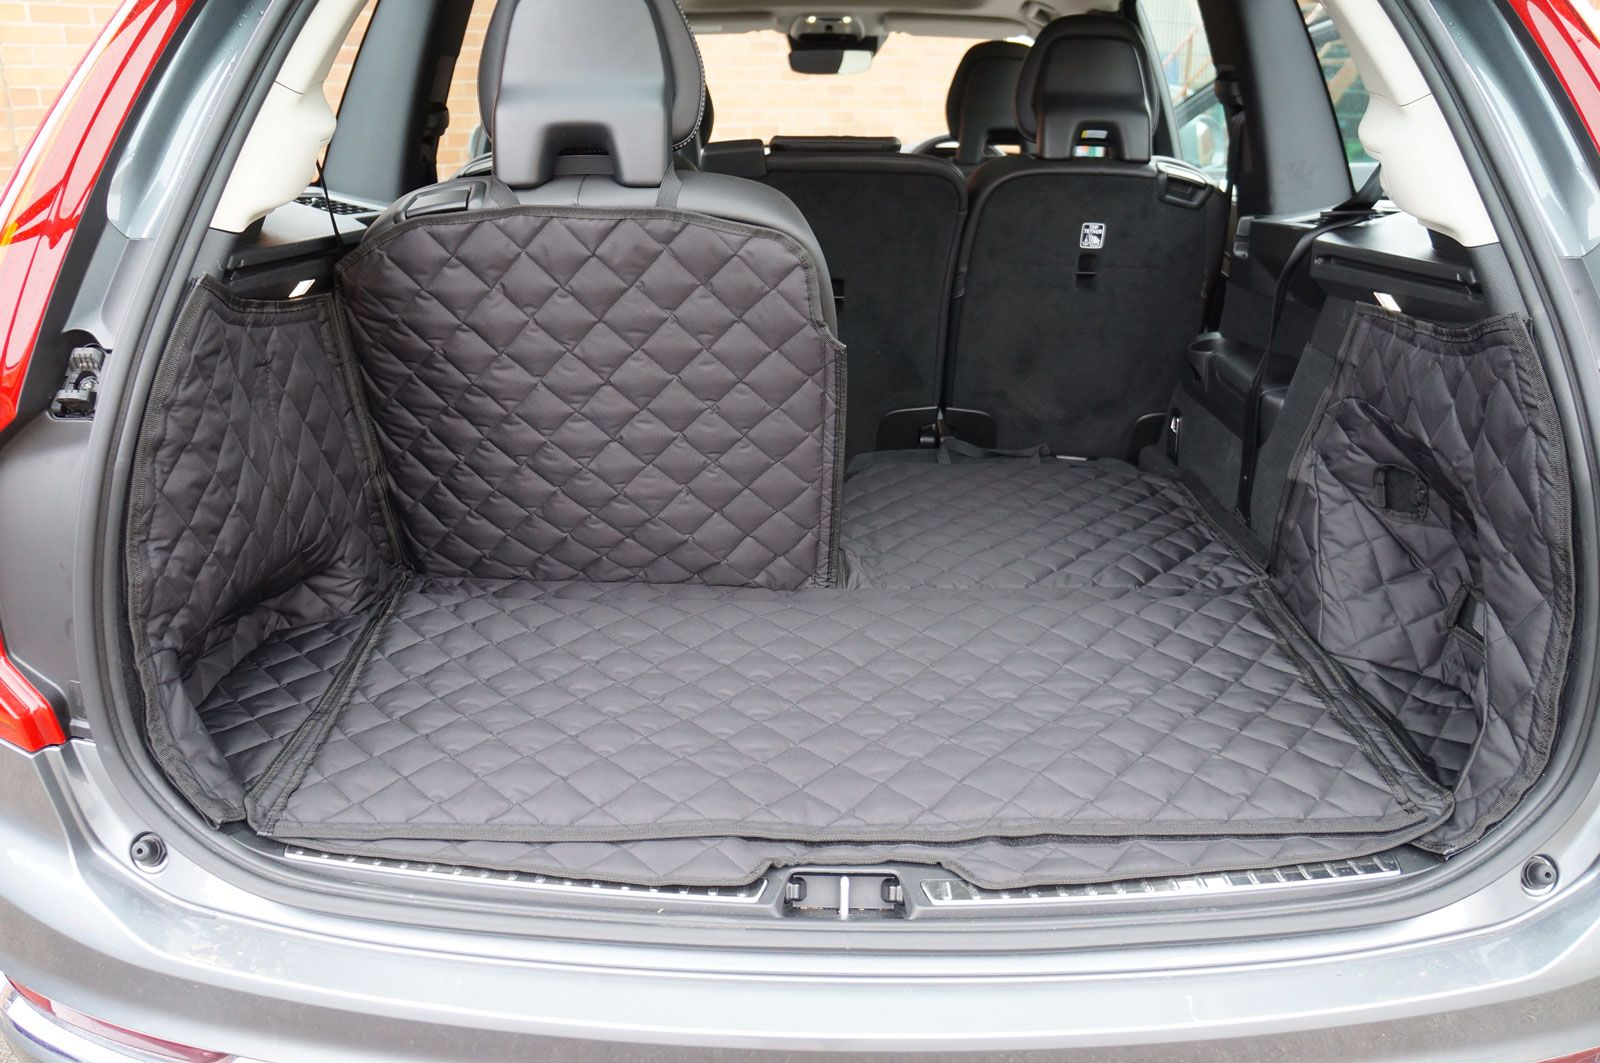 volvo xc90 7 seats 2015 2019 boot liners from. Black Bedroom Furniture Sets. Home Design Ideas